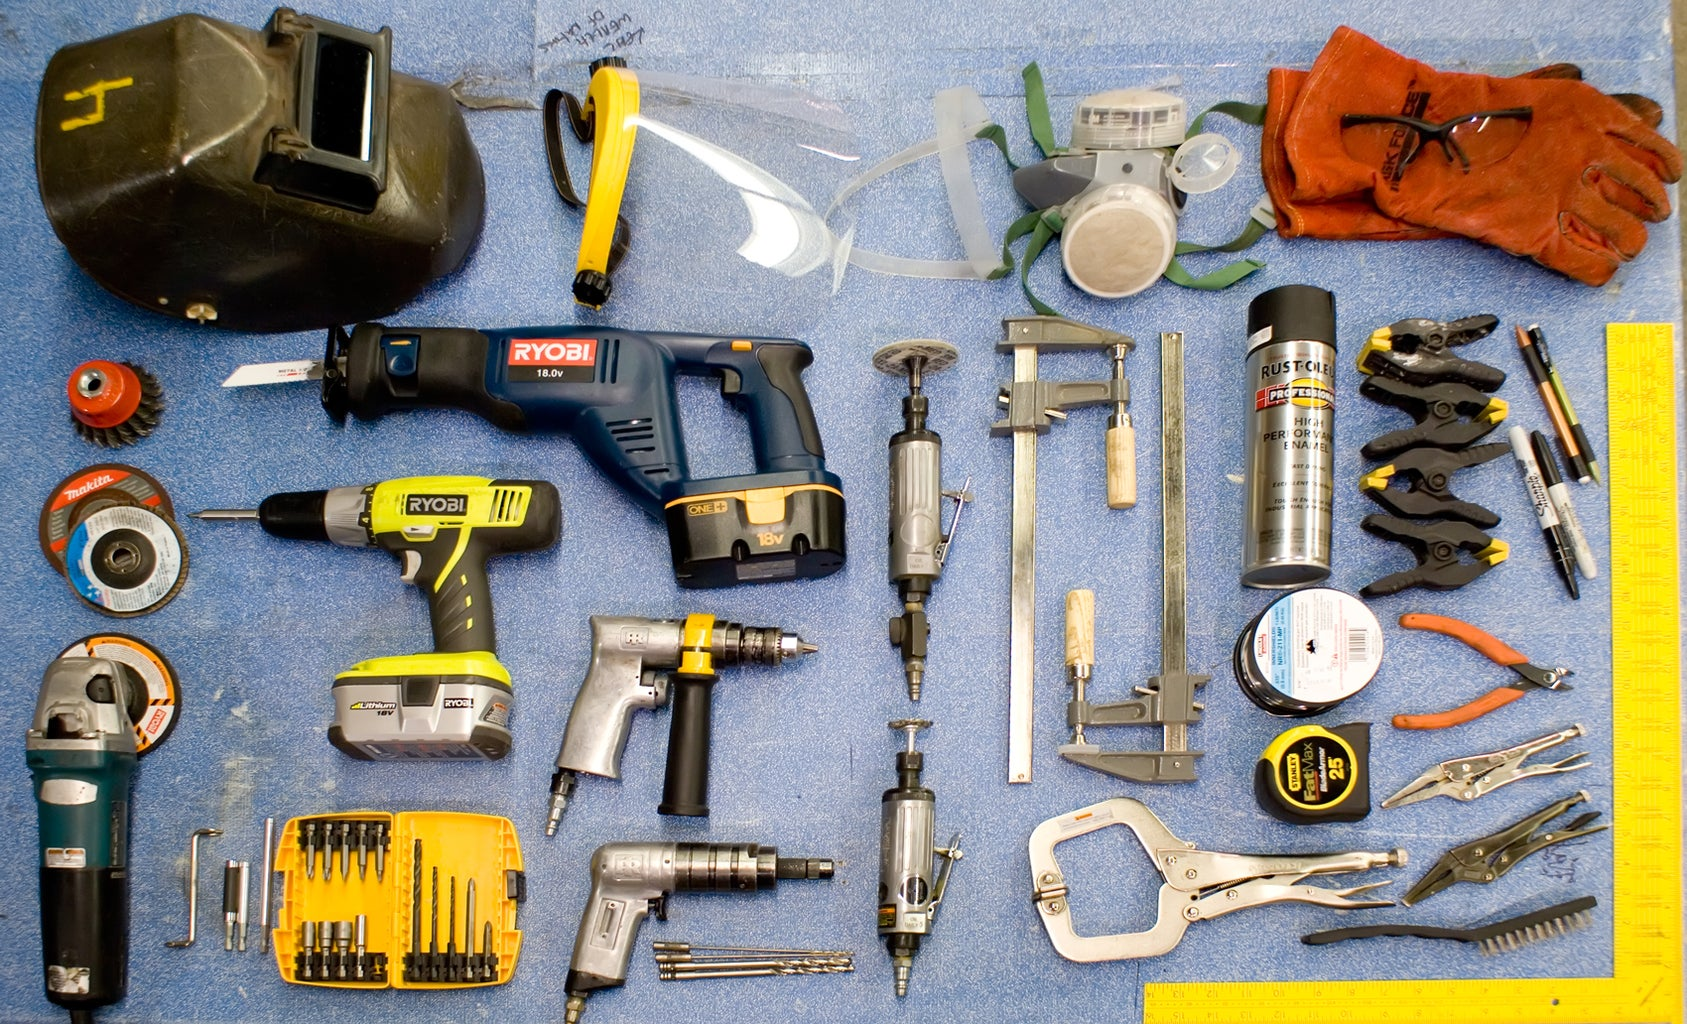 Get Your Tools in Check